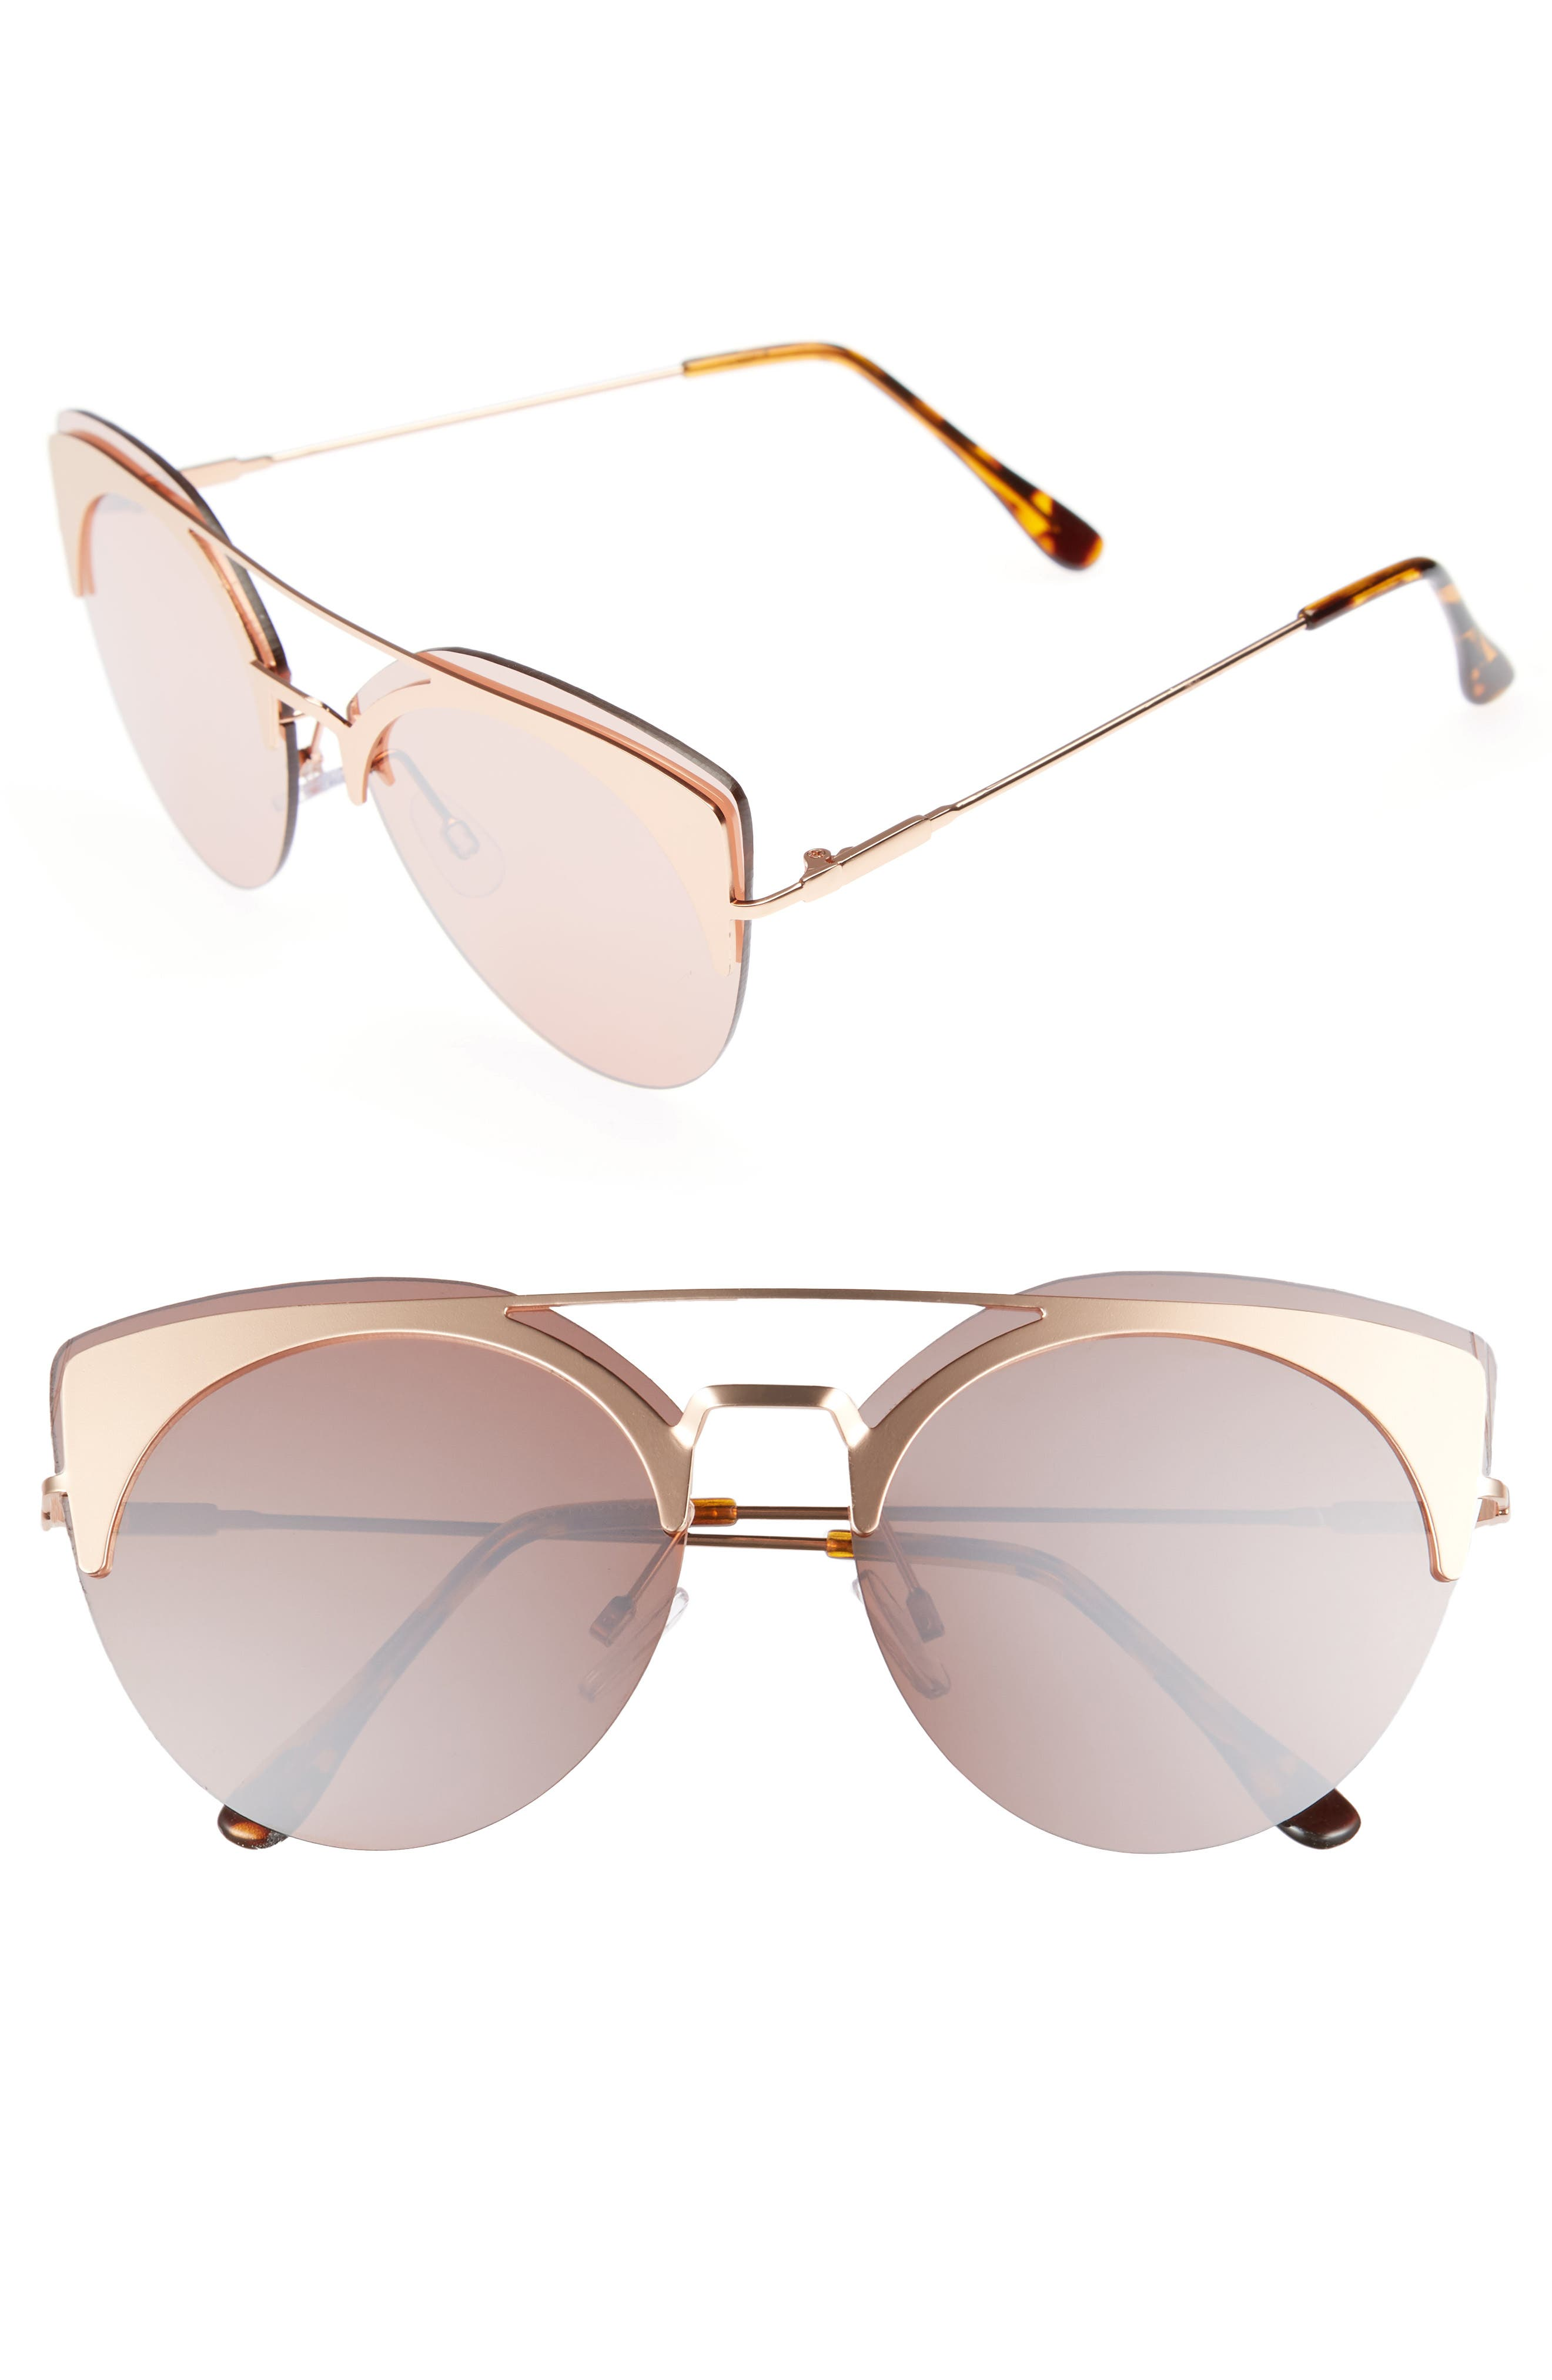 54mm Round Sunglasses,                             Main thumbnail 1, color,                             710